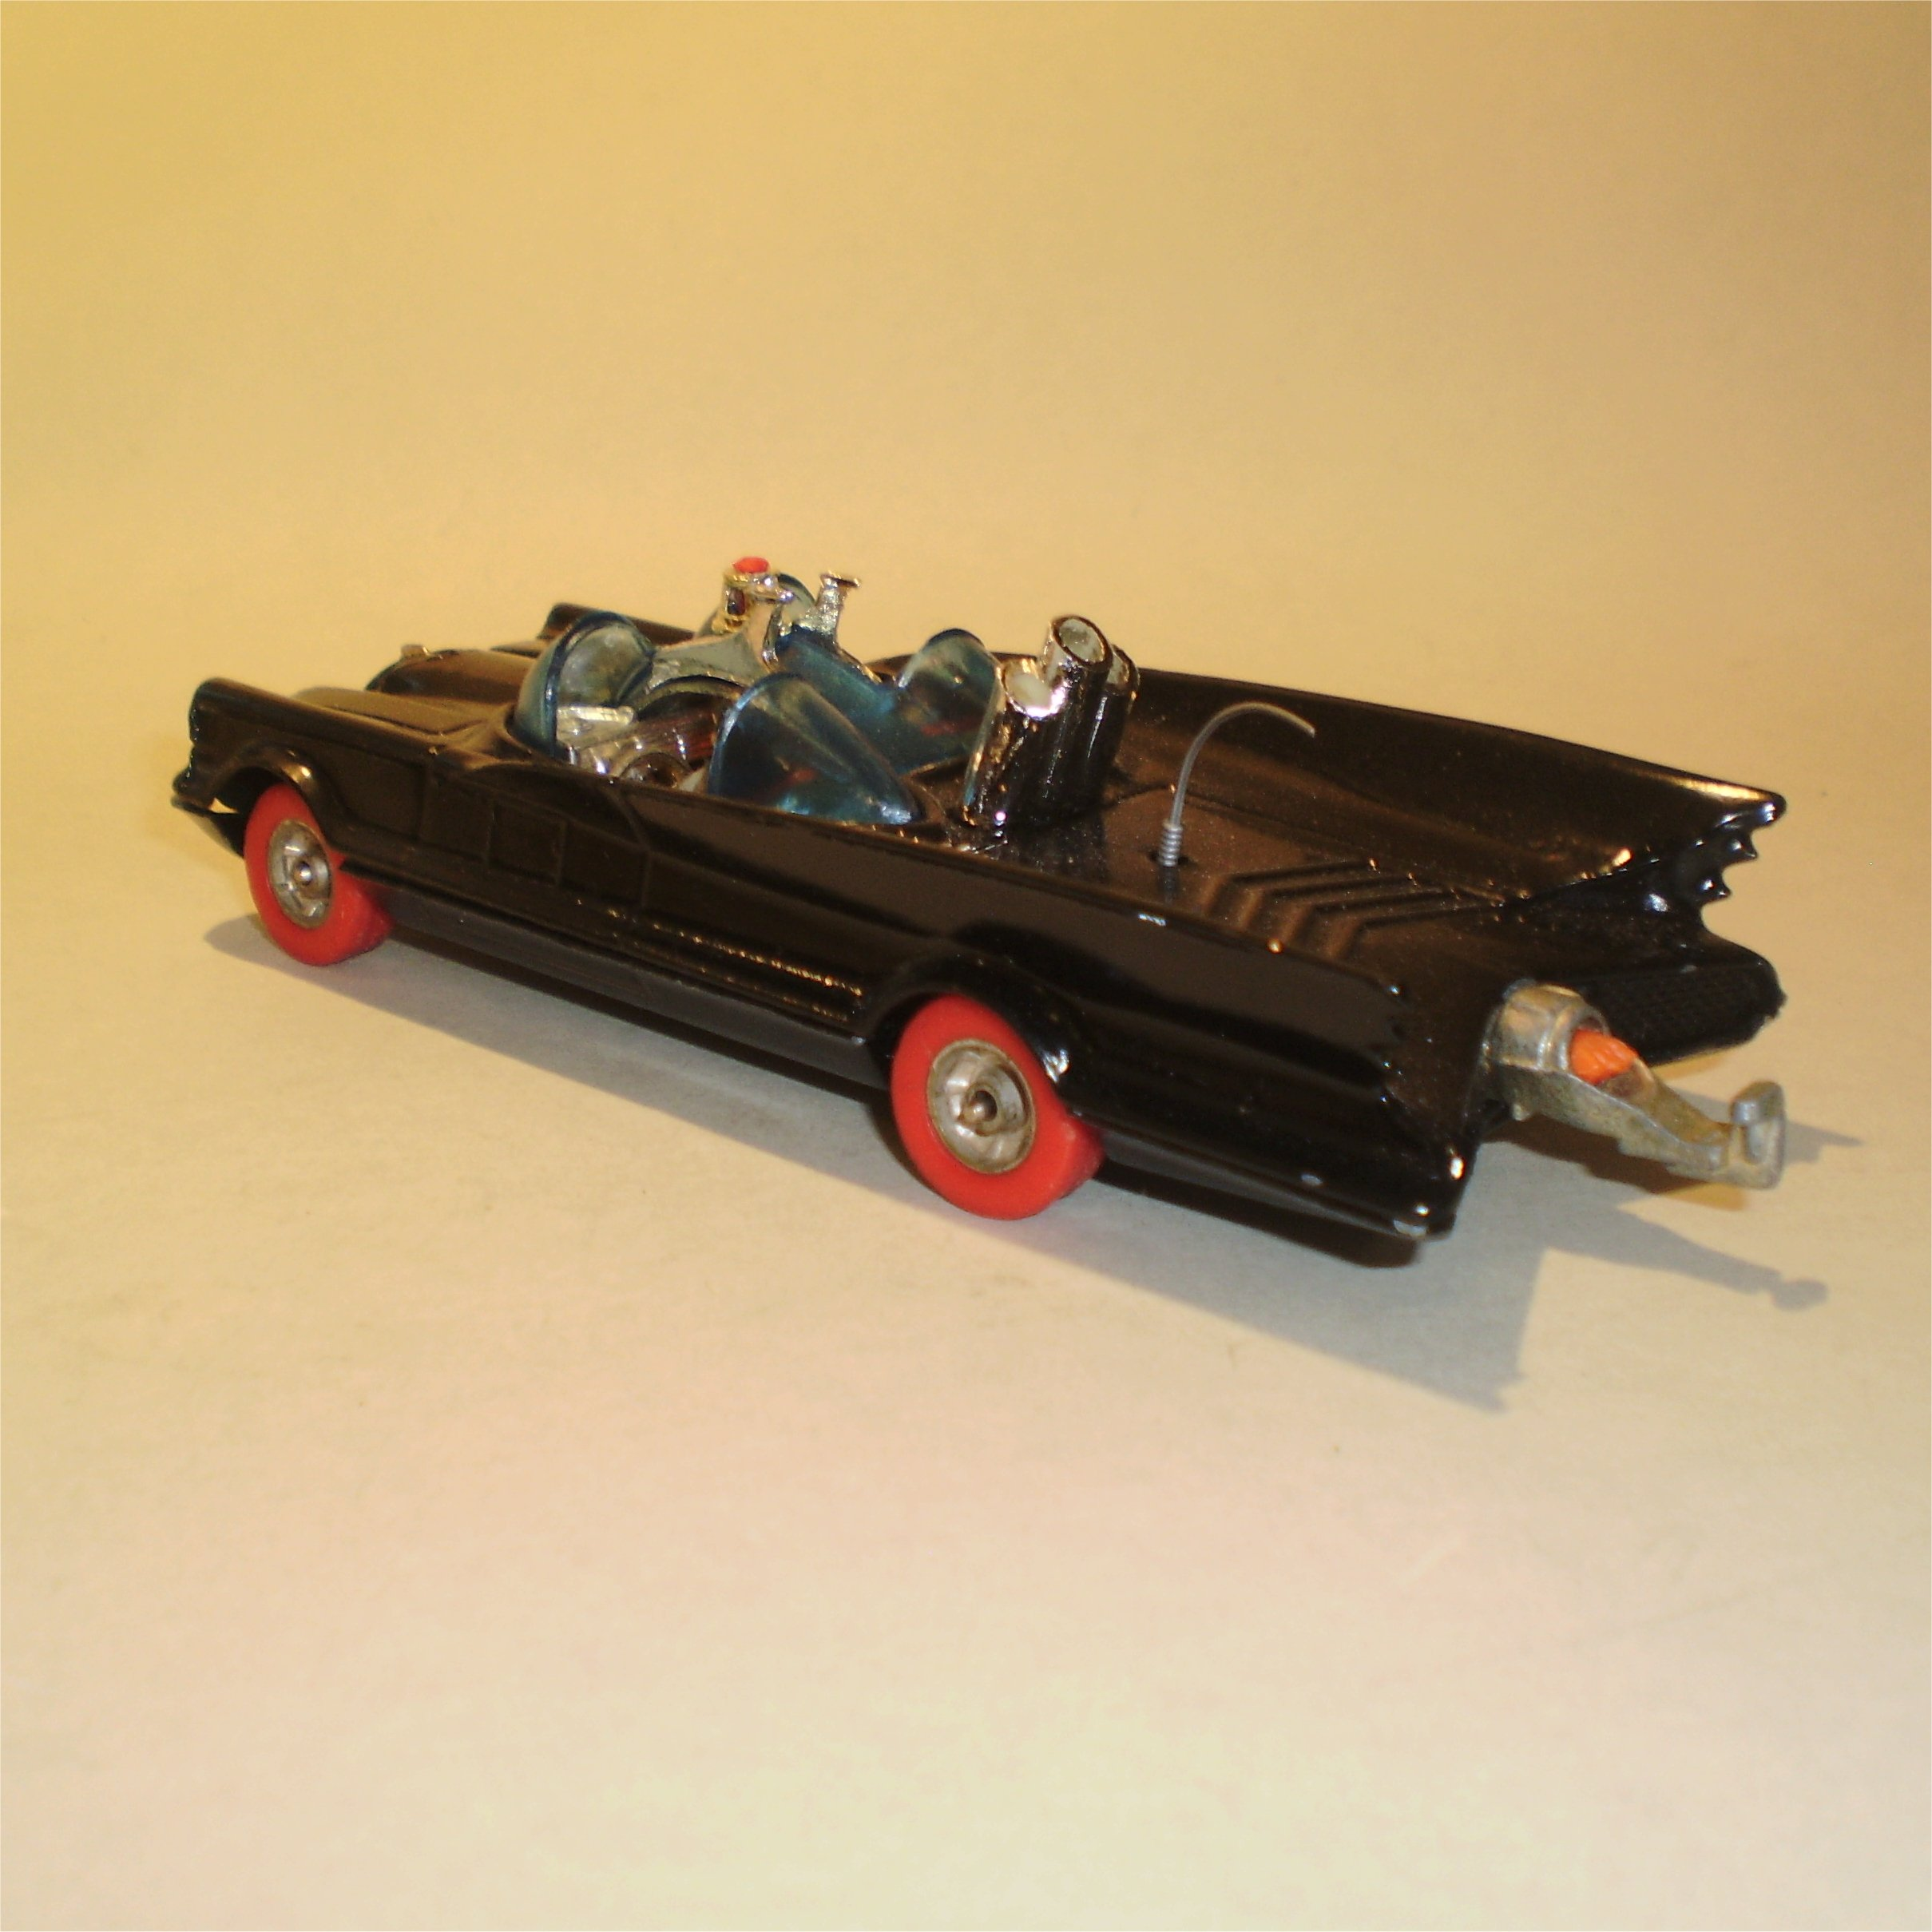 0267-redwheel-batmobile-2